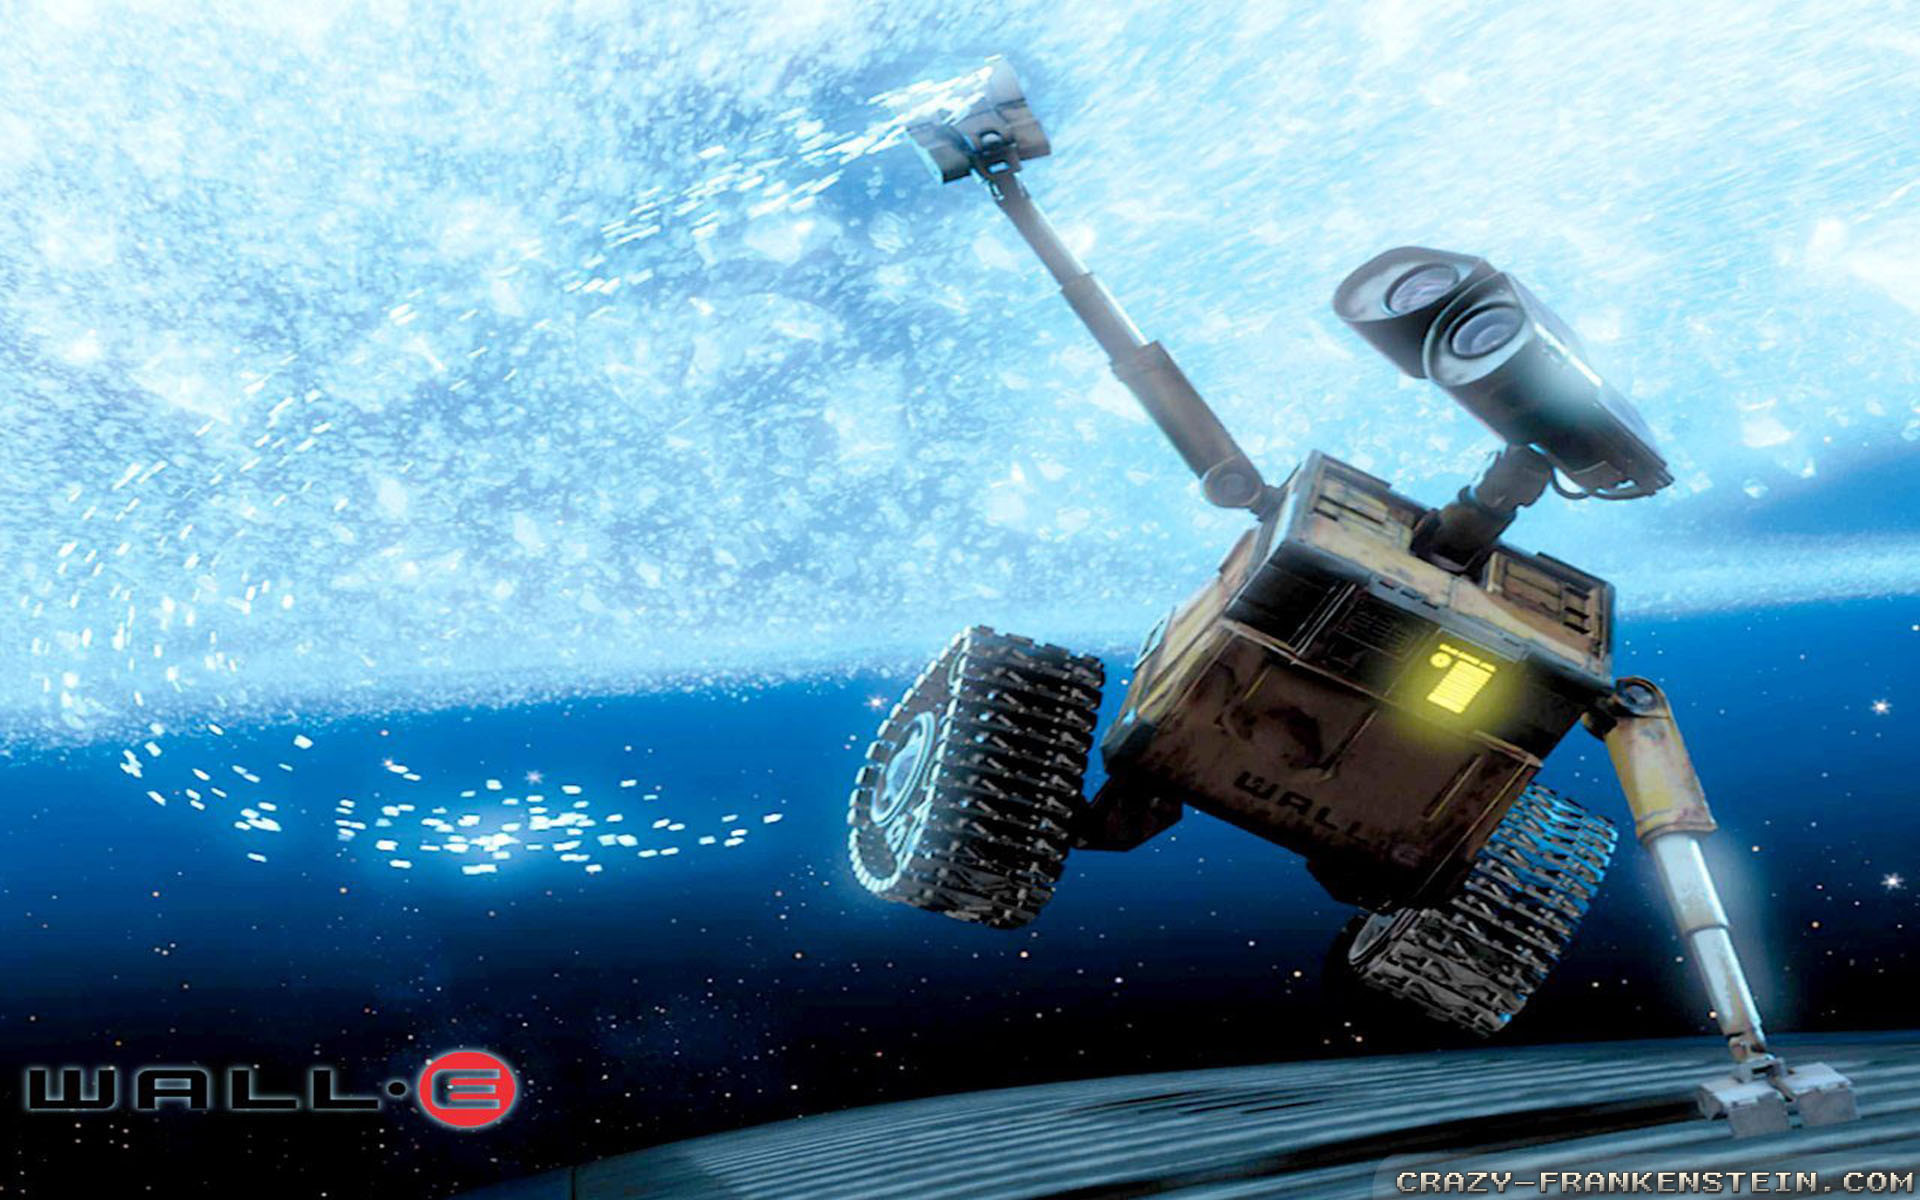 1920x1200 Wallpaper: Wall E Resolution: 1024x768 | 1280x1024 | 1600x1200. Widescreen  Res: 1440x900 | 1680x1050 |